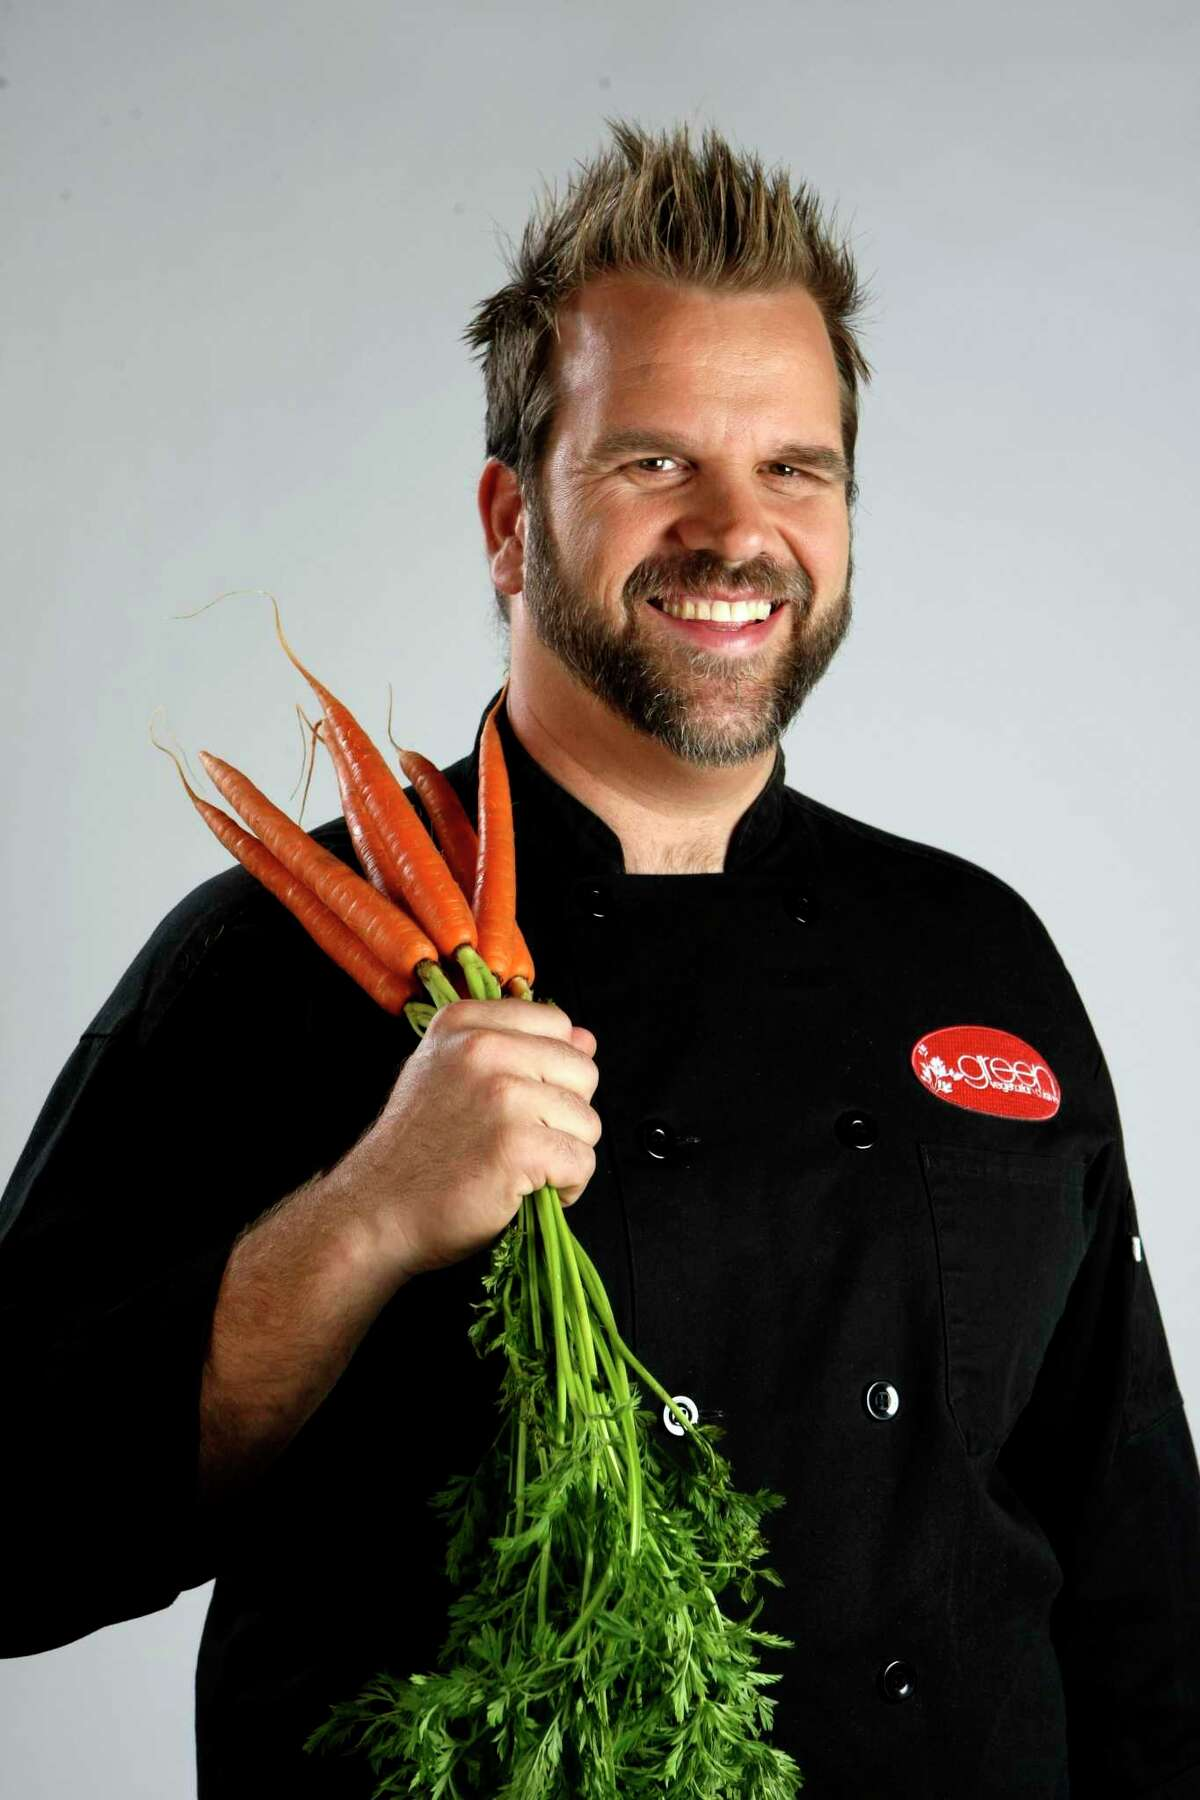 Mike Behrend, owner of Bok Choy, Green Vegetarian Cuisine and Earth Burger, is closing Bok Choy after service today.